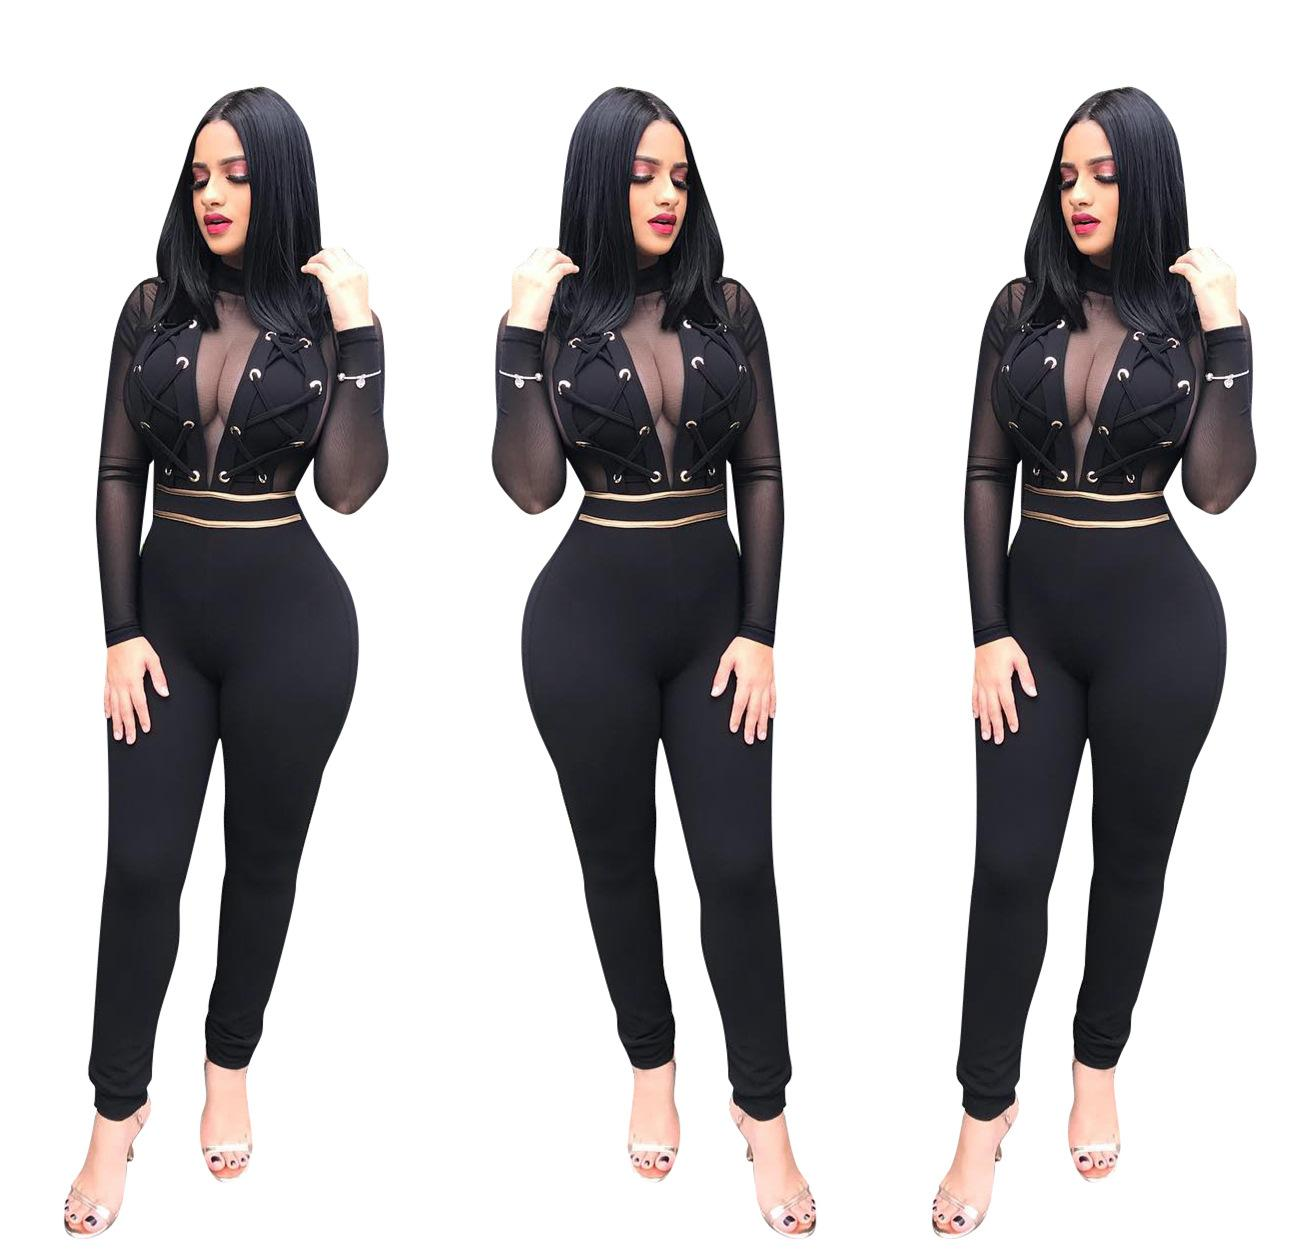 70d09ea579ed 2019 Women Club Sexy Jumpsuit Luxury Grenadine Long Sleeve Romper Designer  Clothes Plus Size Bodysuits Womens Clothing From Hengda999